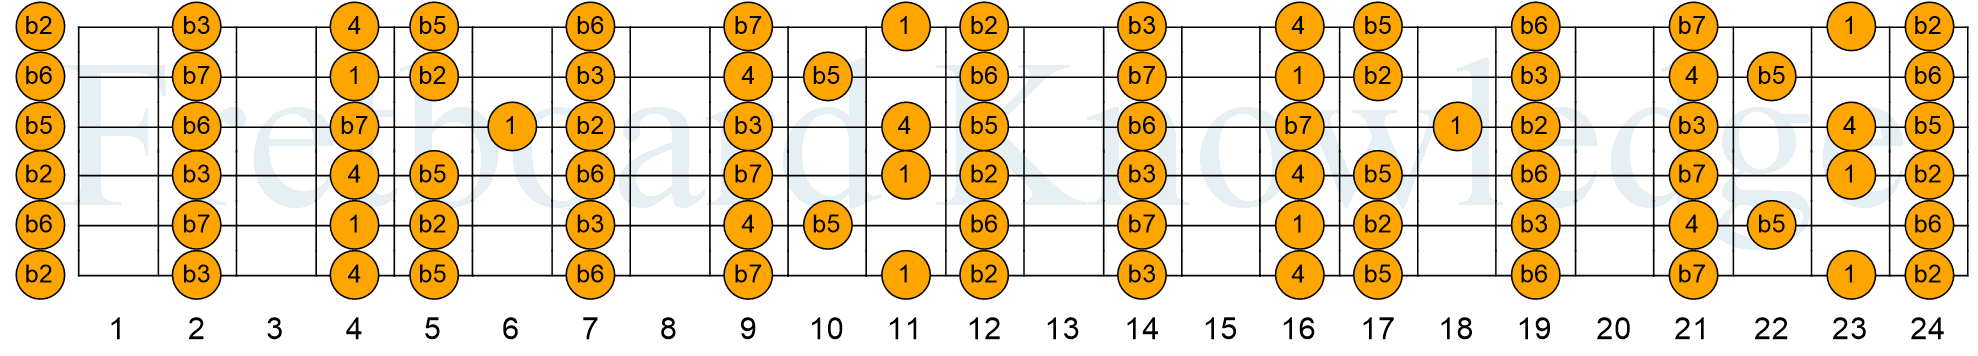 The D Major Scale In The Dadgad Guitar Tuning Guitar Fretboard